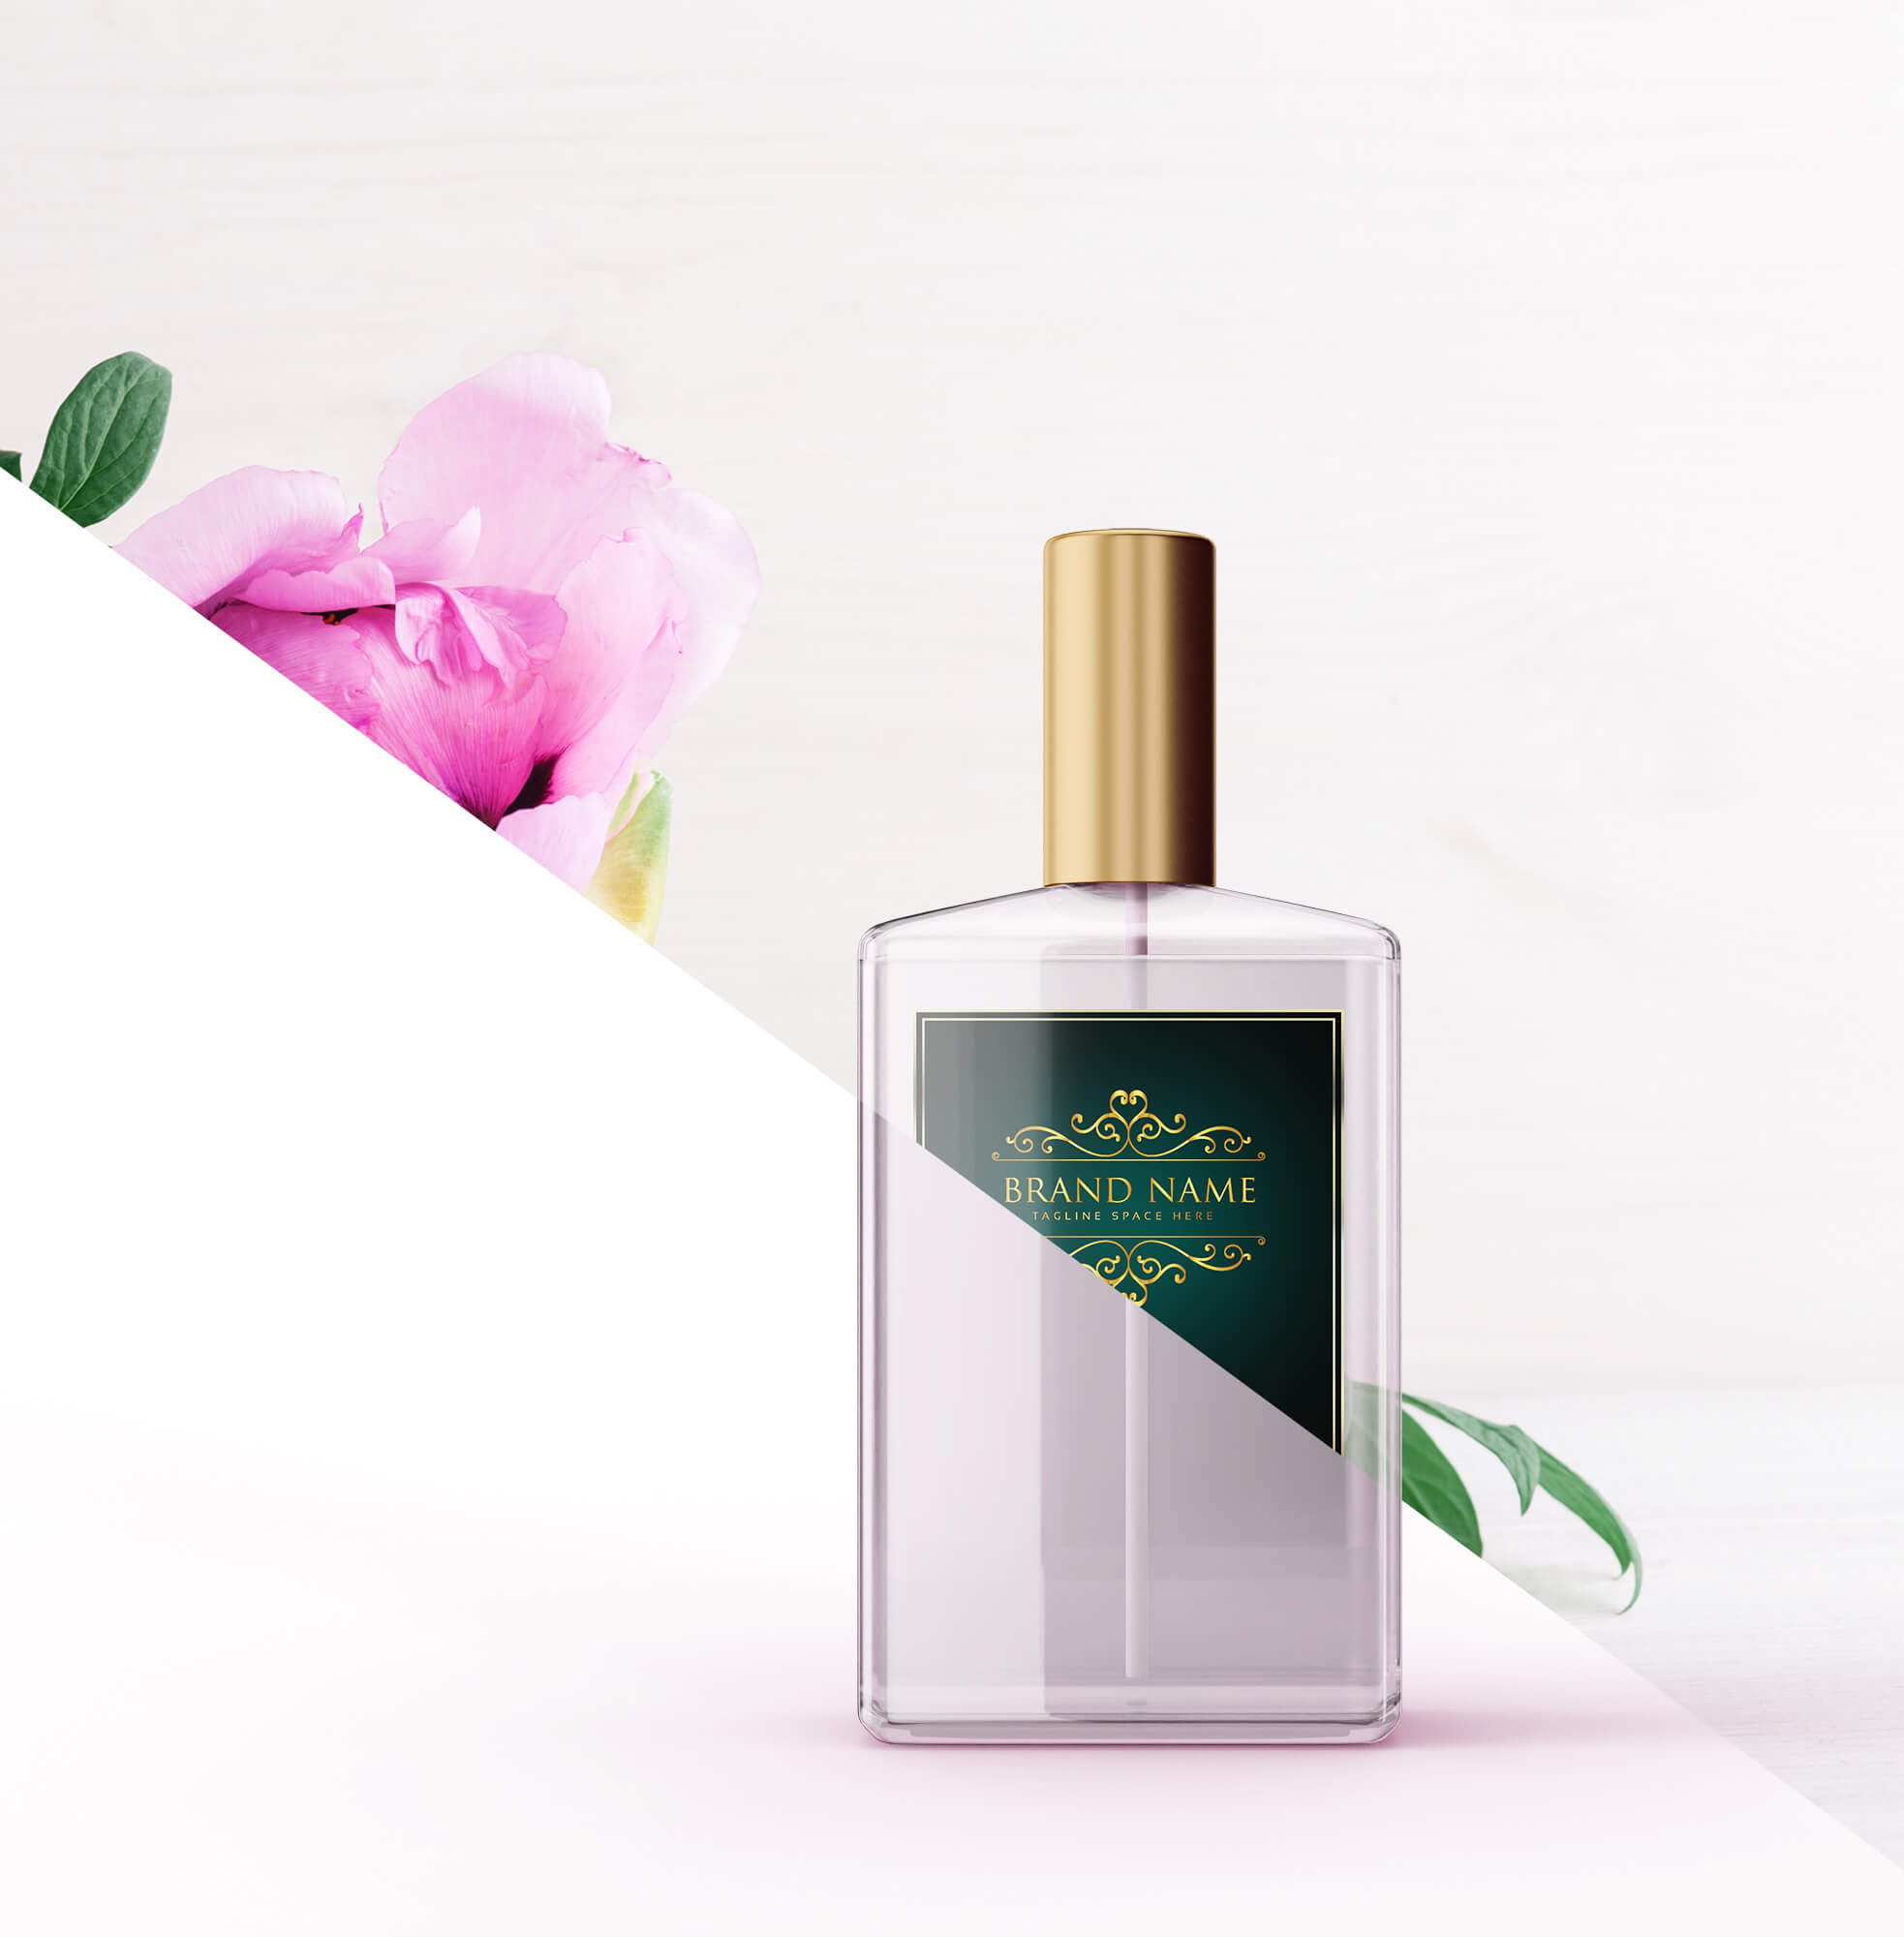 Editable Free Cologne Mockup PSD Template